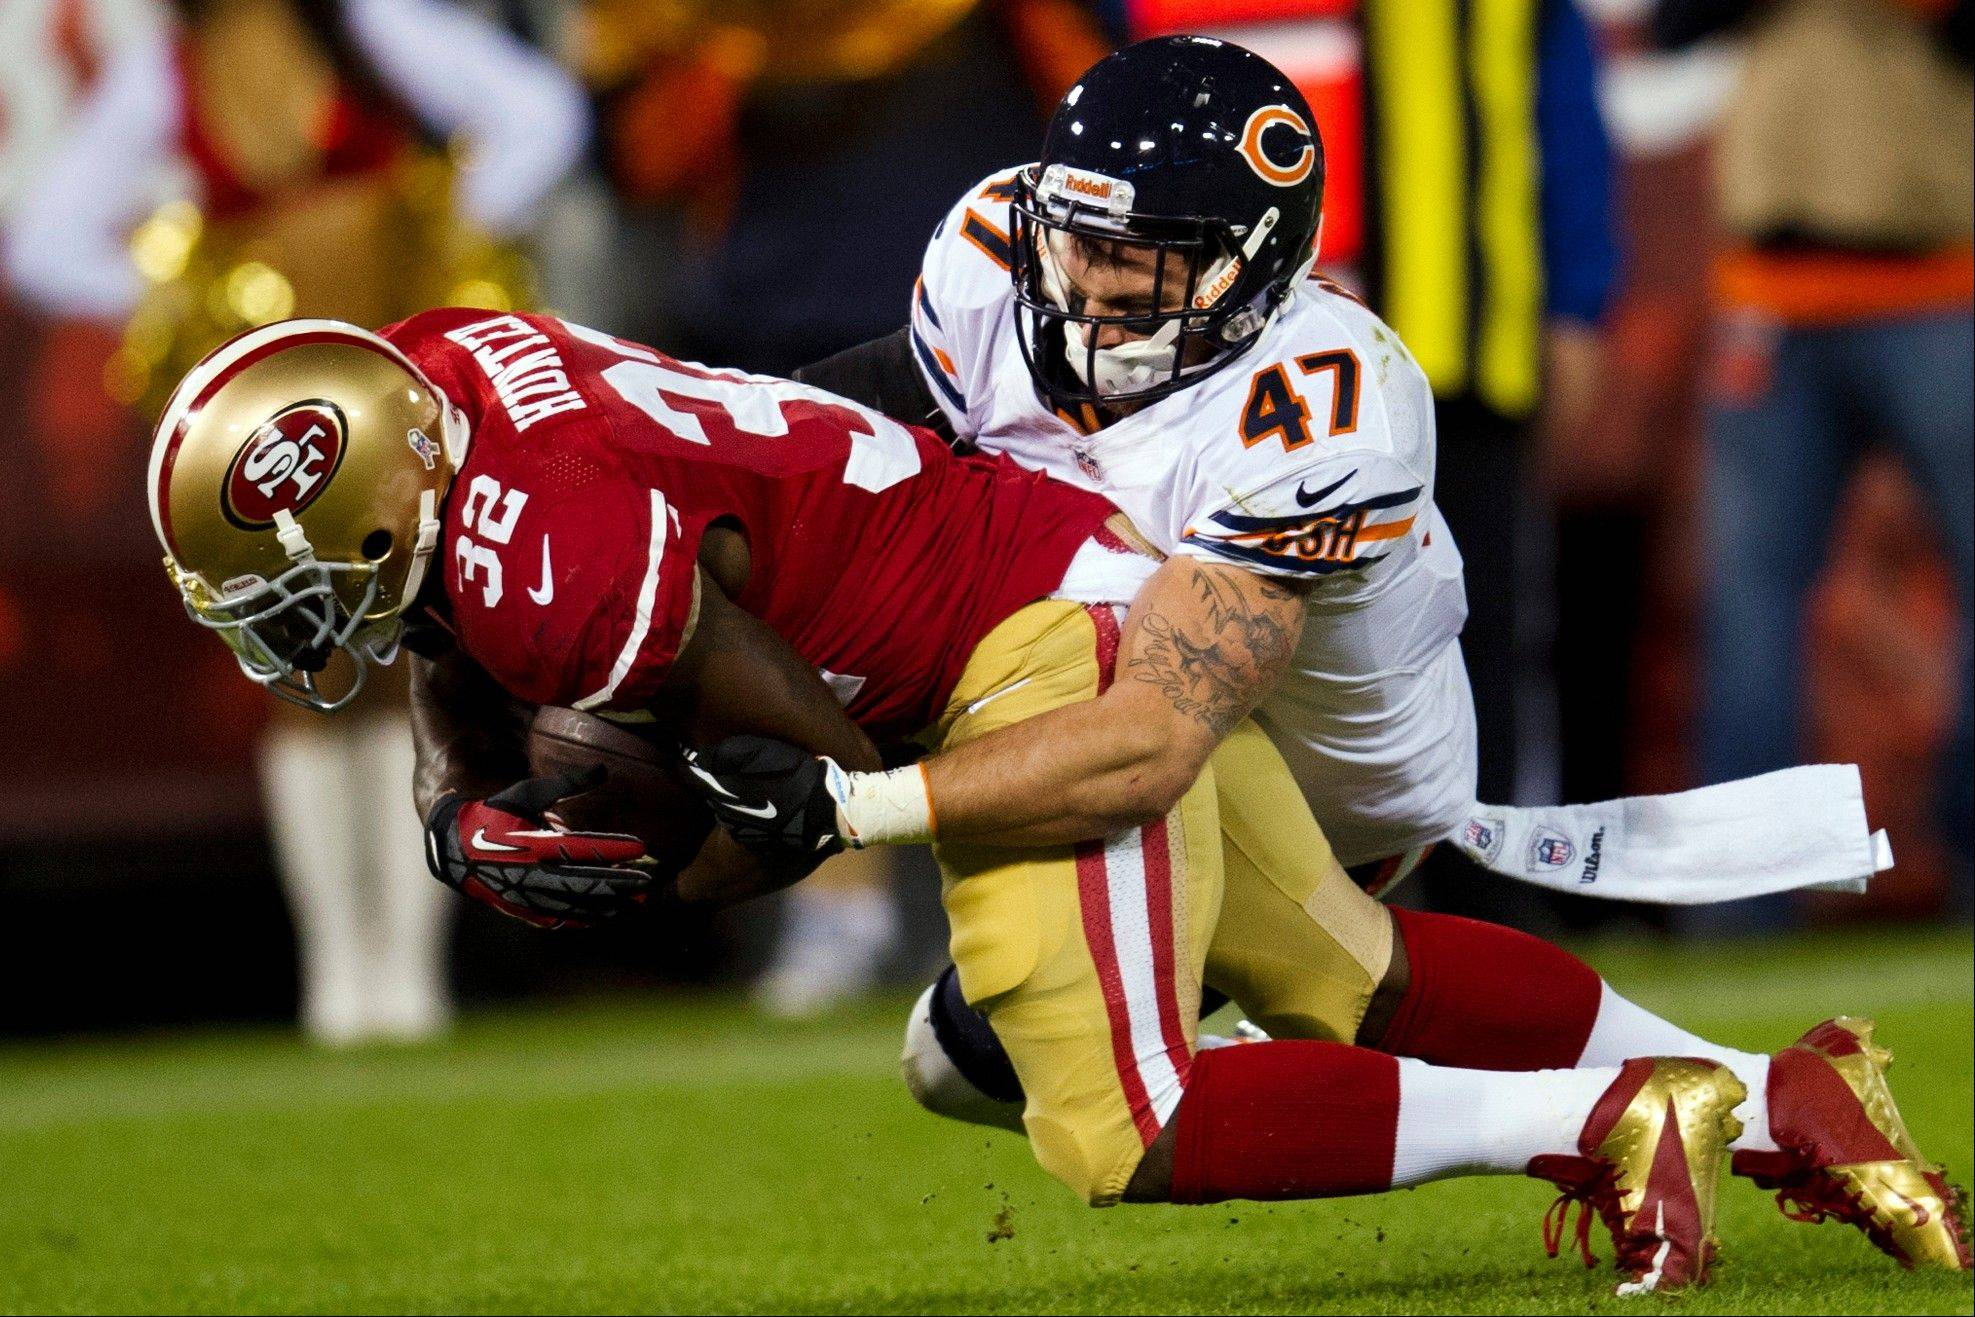 San Francisco 49ers running back Kendall Hunter is tackled by Bears free safety Chris Conte as he leans into the end zone for a touchdown during Monday's second quarter in San Francisco.